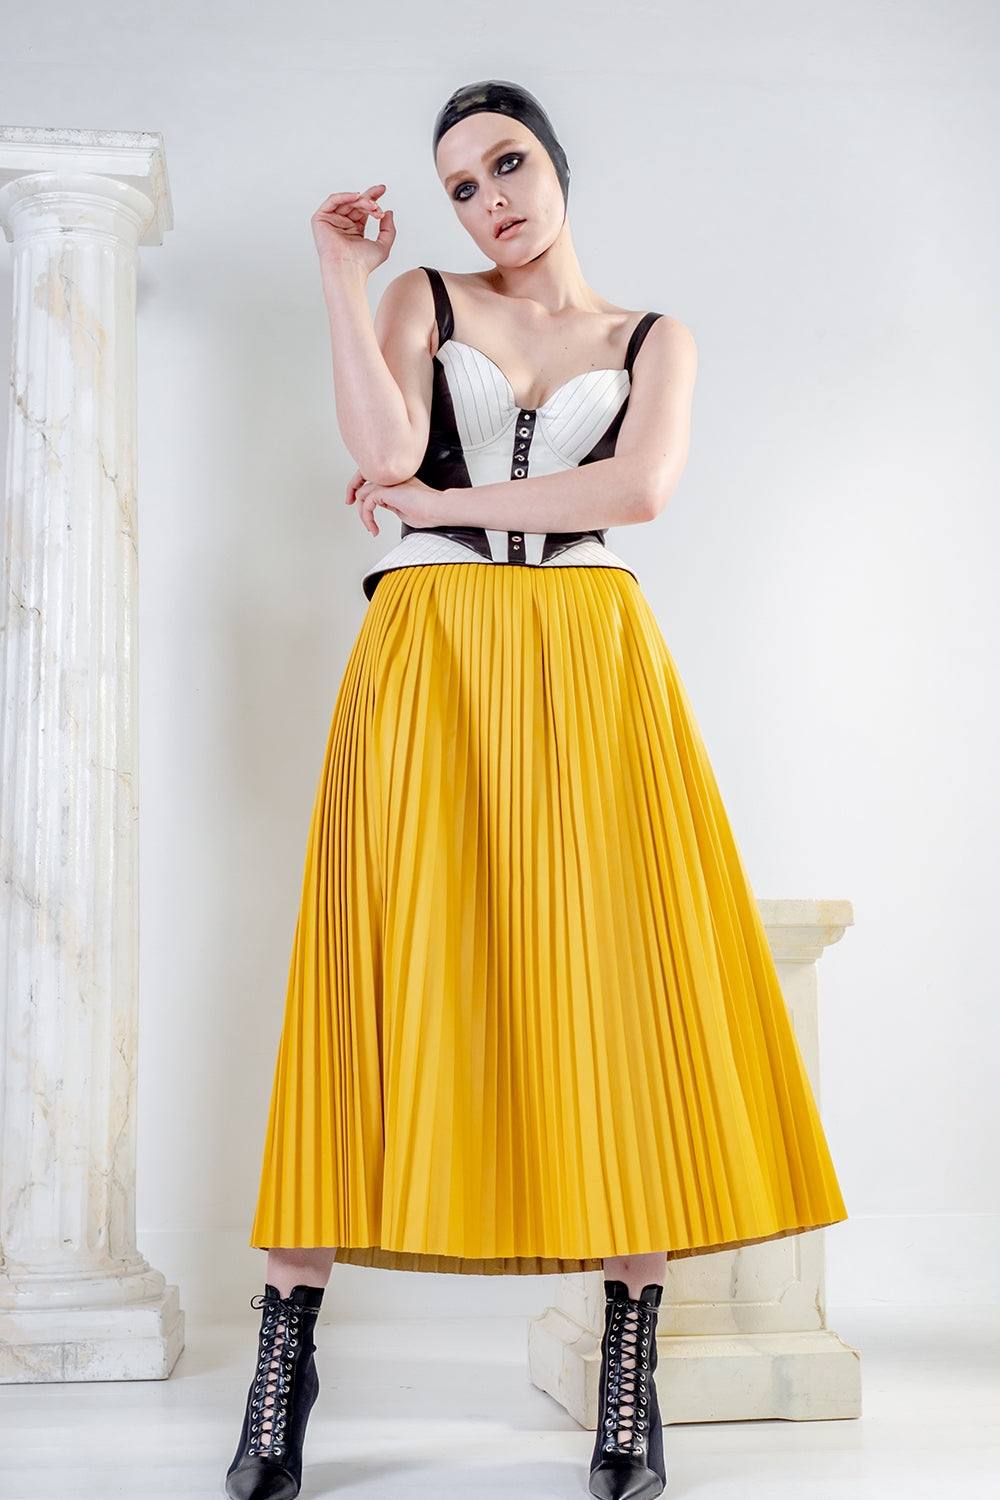 EOS leather pleated skirt in yellow ankle length